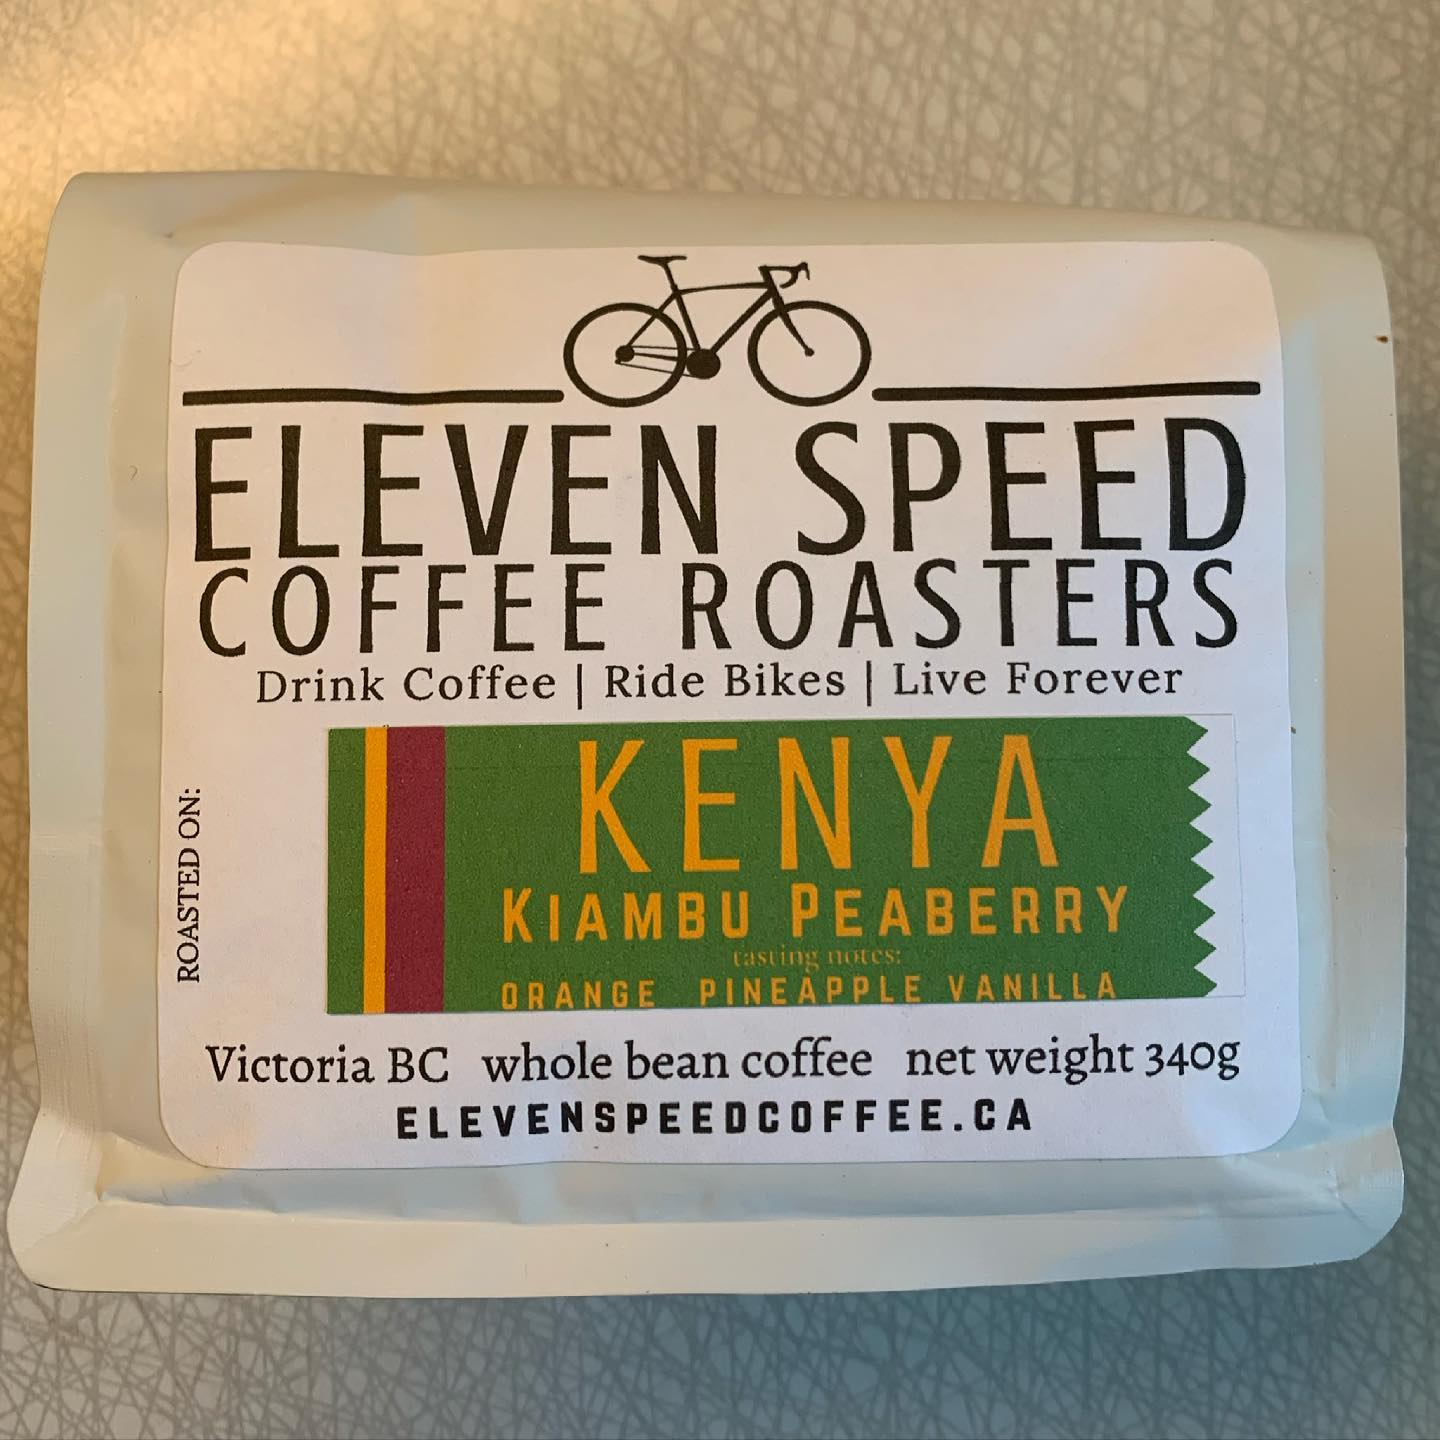 This was delivered last week and I've been looking forward to it. Today I cracked it open and it did not disappoint! So good. #yyjcoffee #coffee